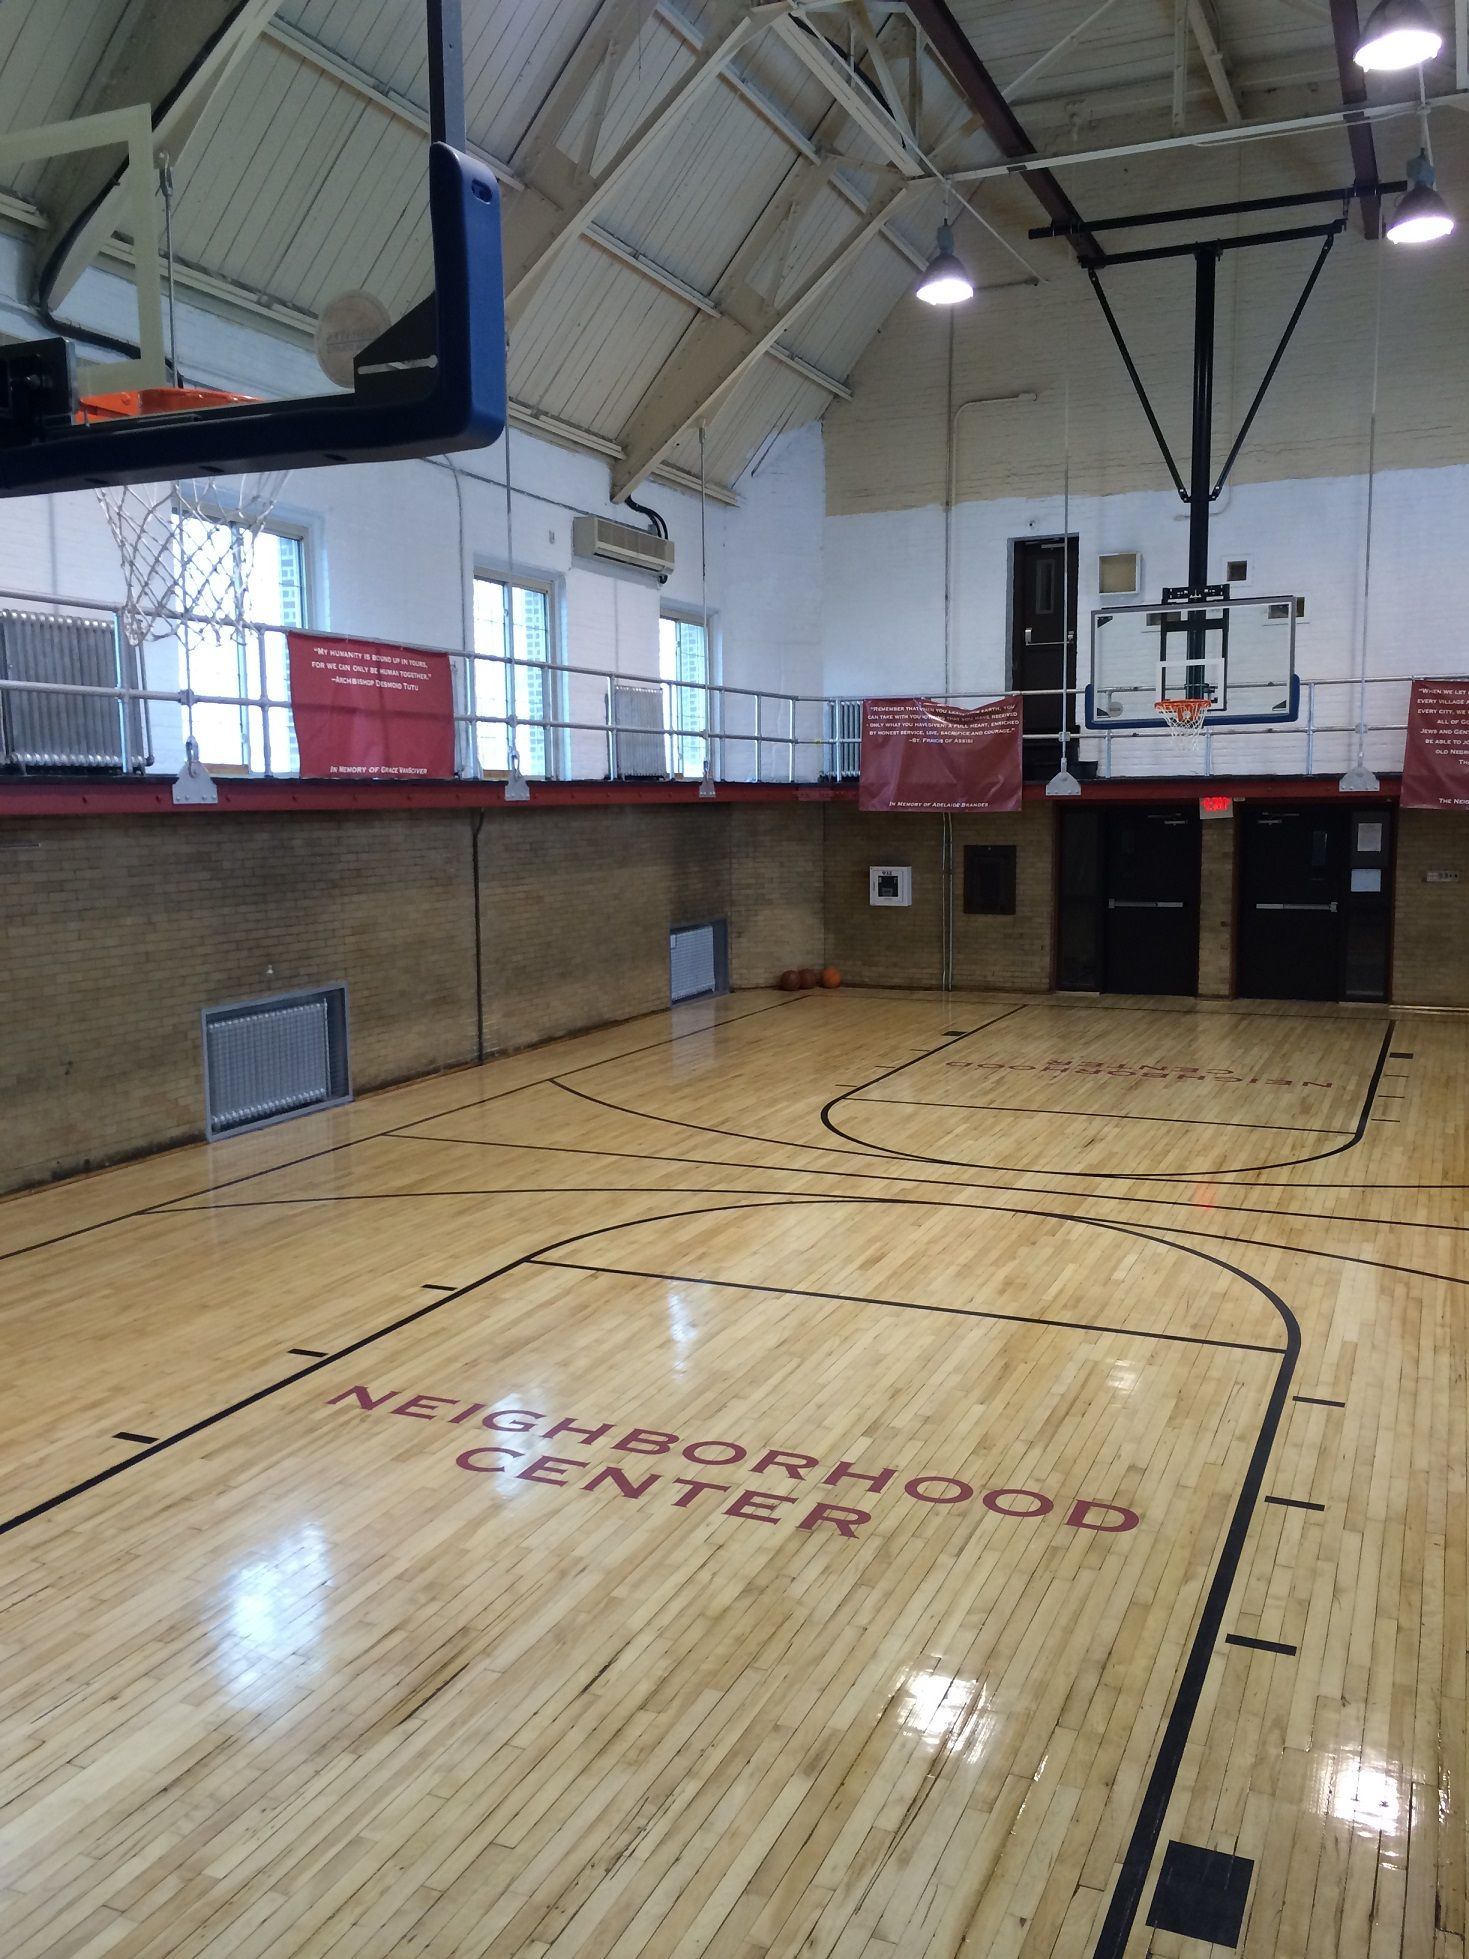 Indoor Basketball Court In A Small Gym In Camden Nj Indoor Basketball Court Basketball Court Indoor Basketball